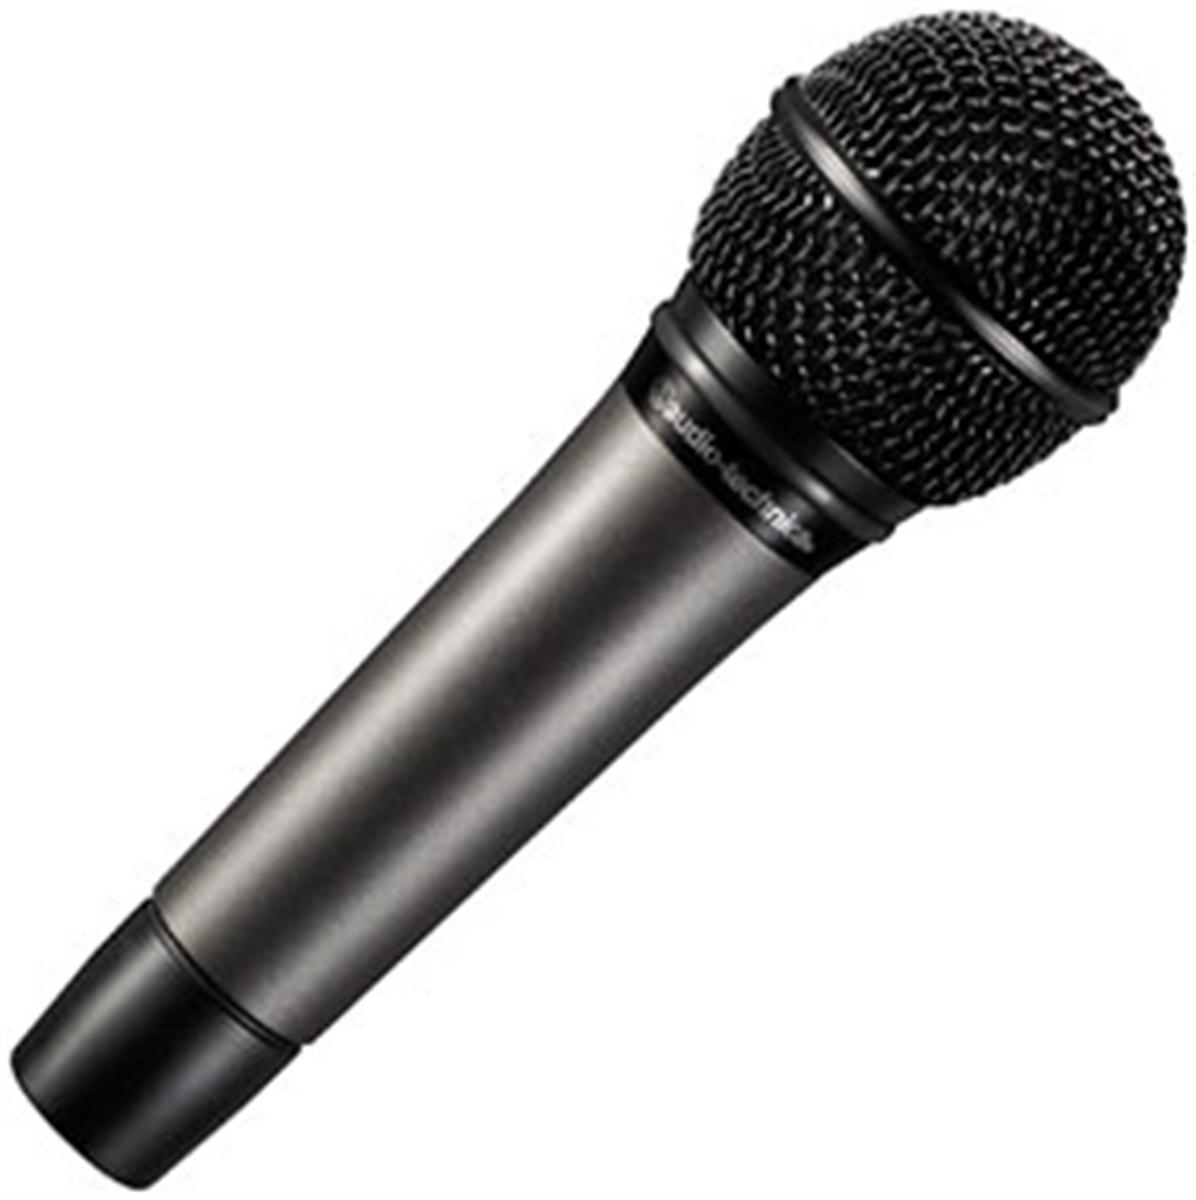 Mic Clipart | Free download best Mic Clipart on ClipArtMag.com